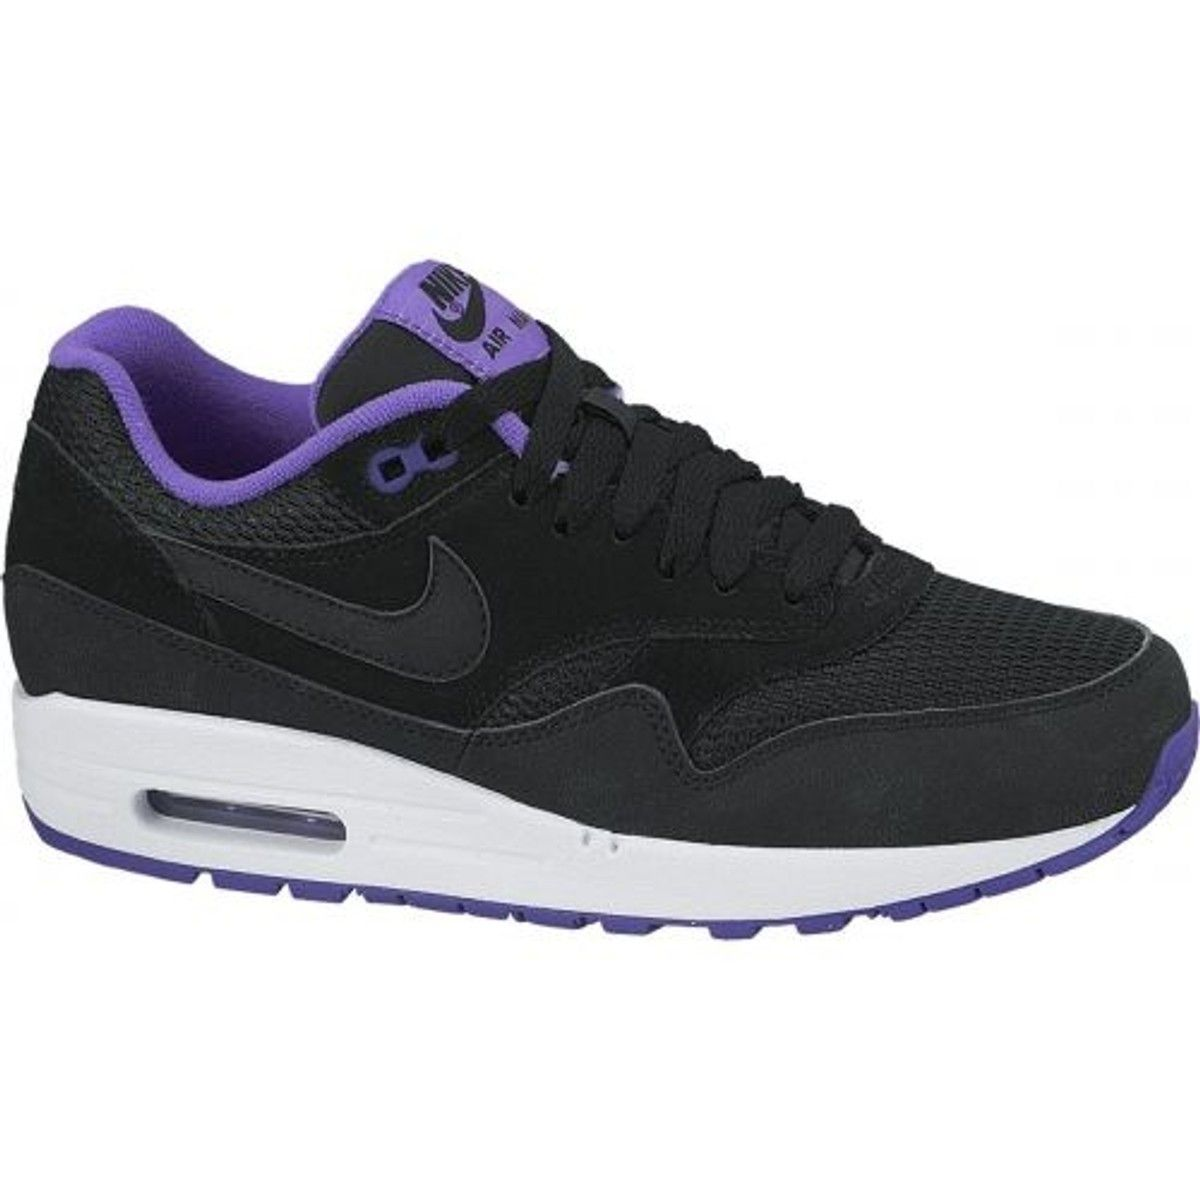 Basket Air Max 1 Essential Taille : 37;36;35;40